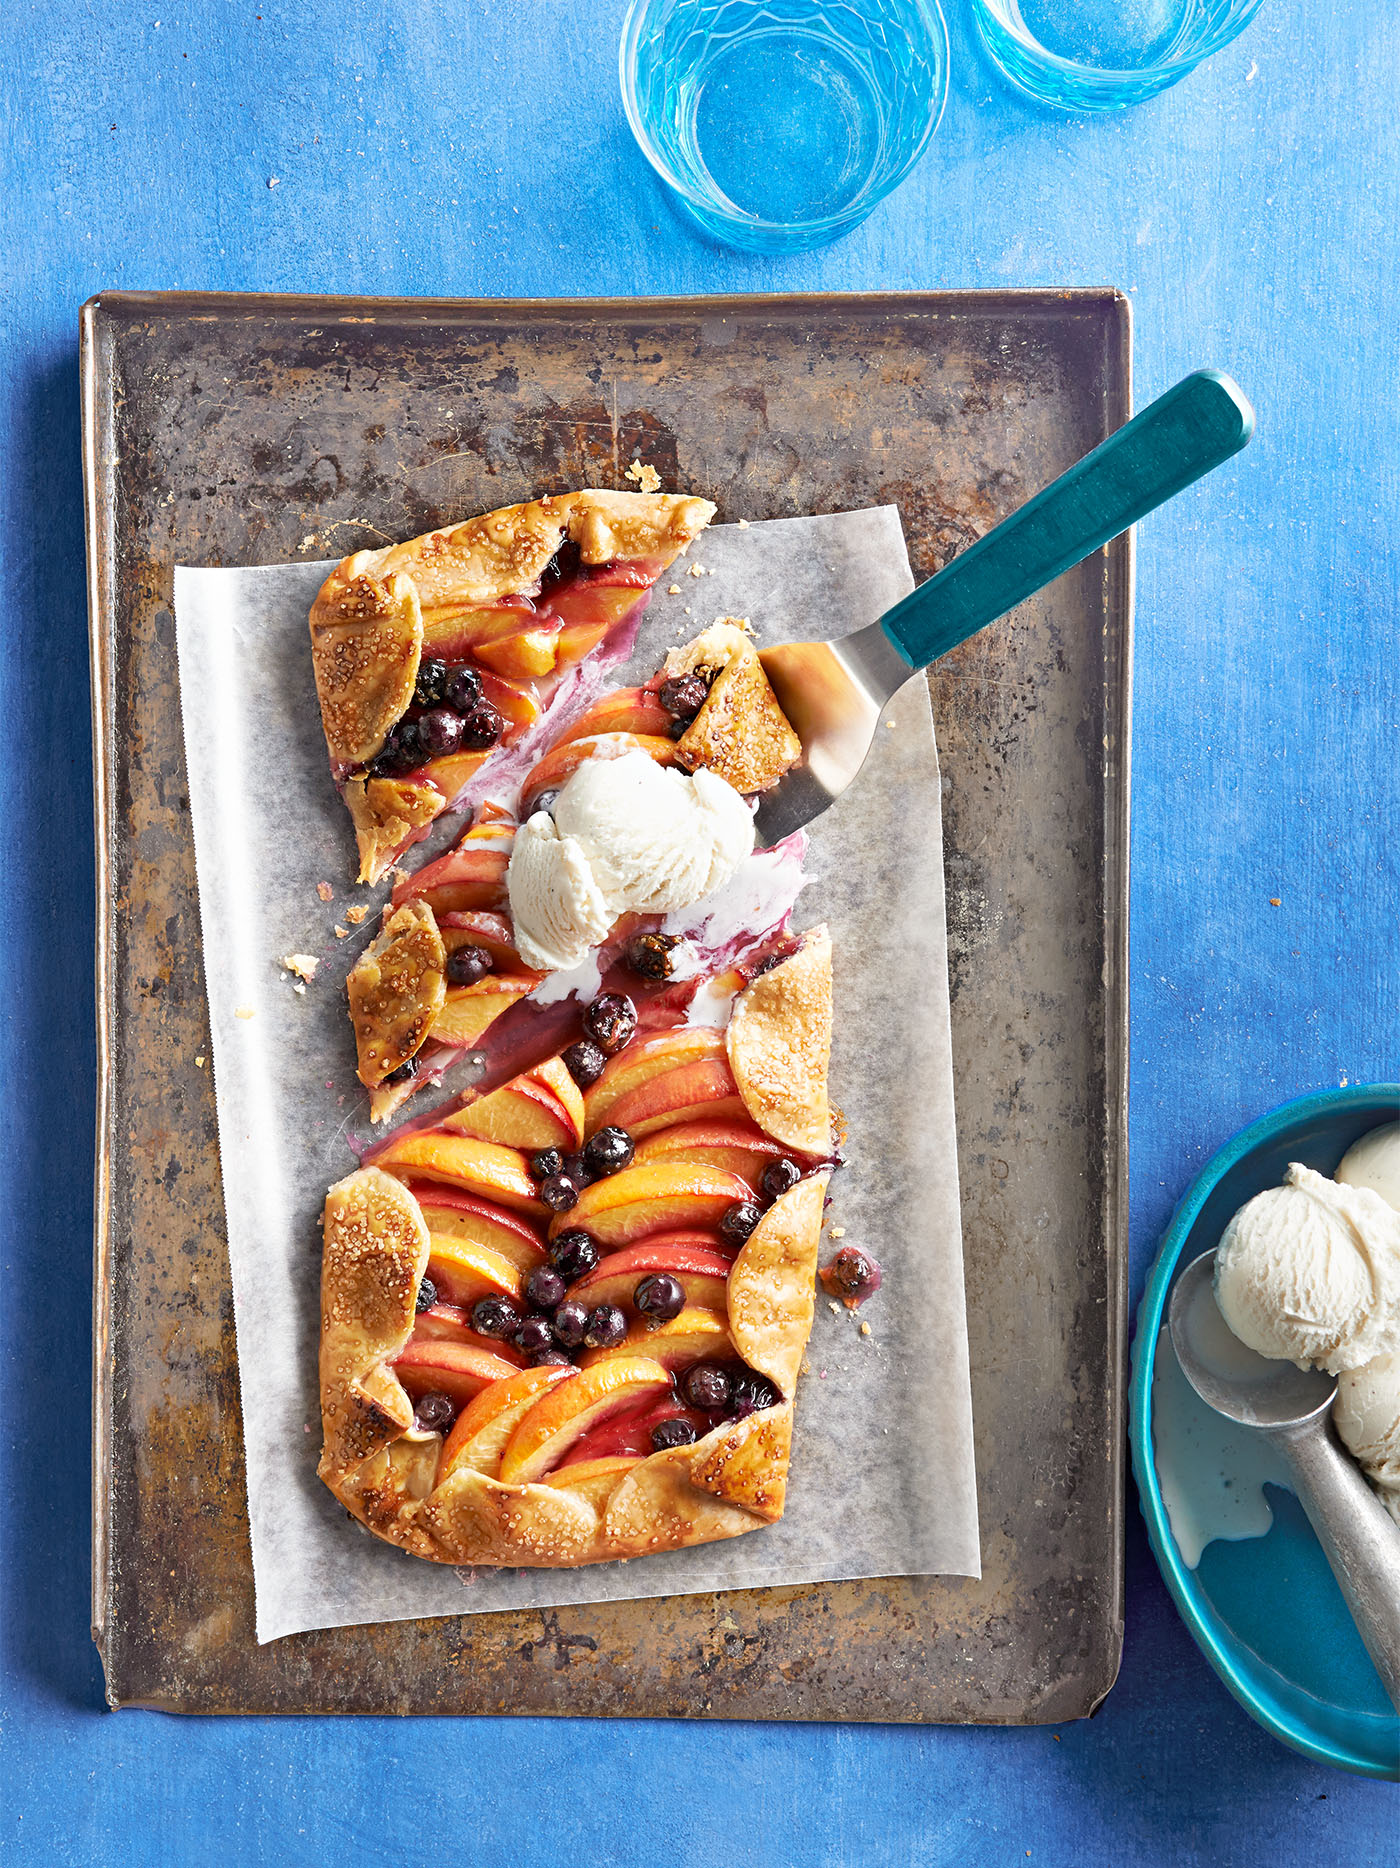 metal baking sheet of Peach and Blueberry Slab Pie